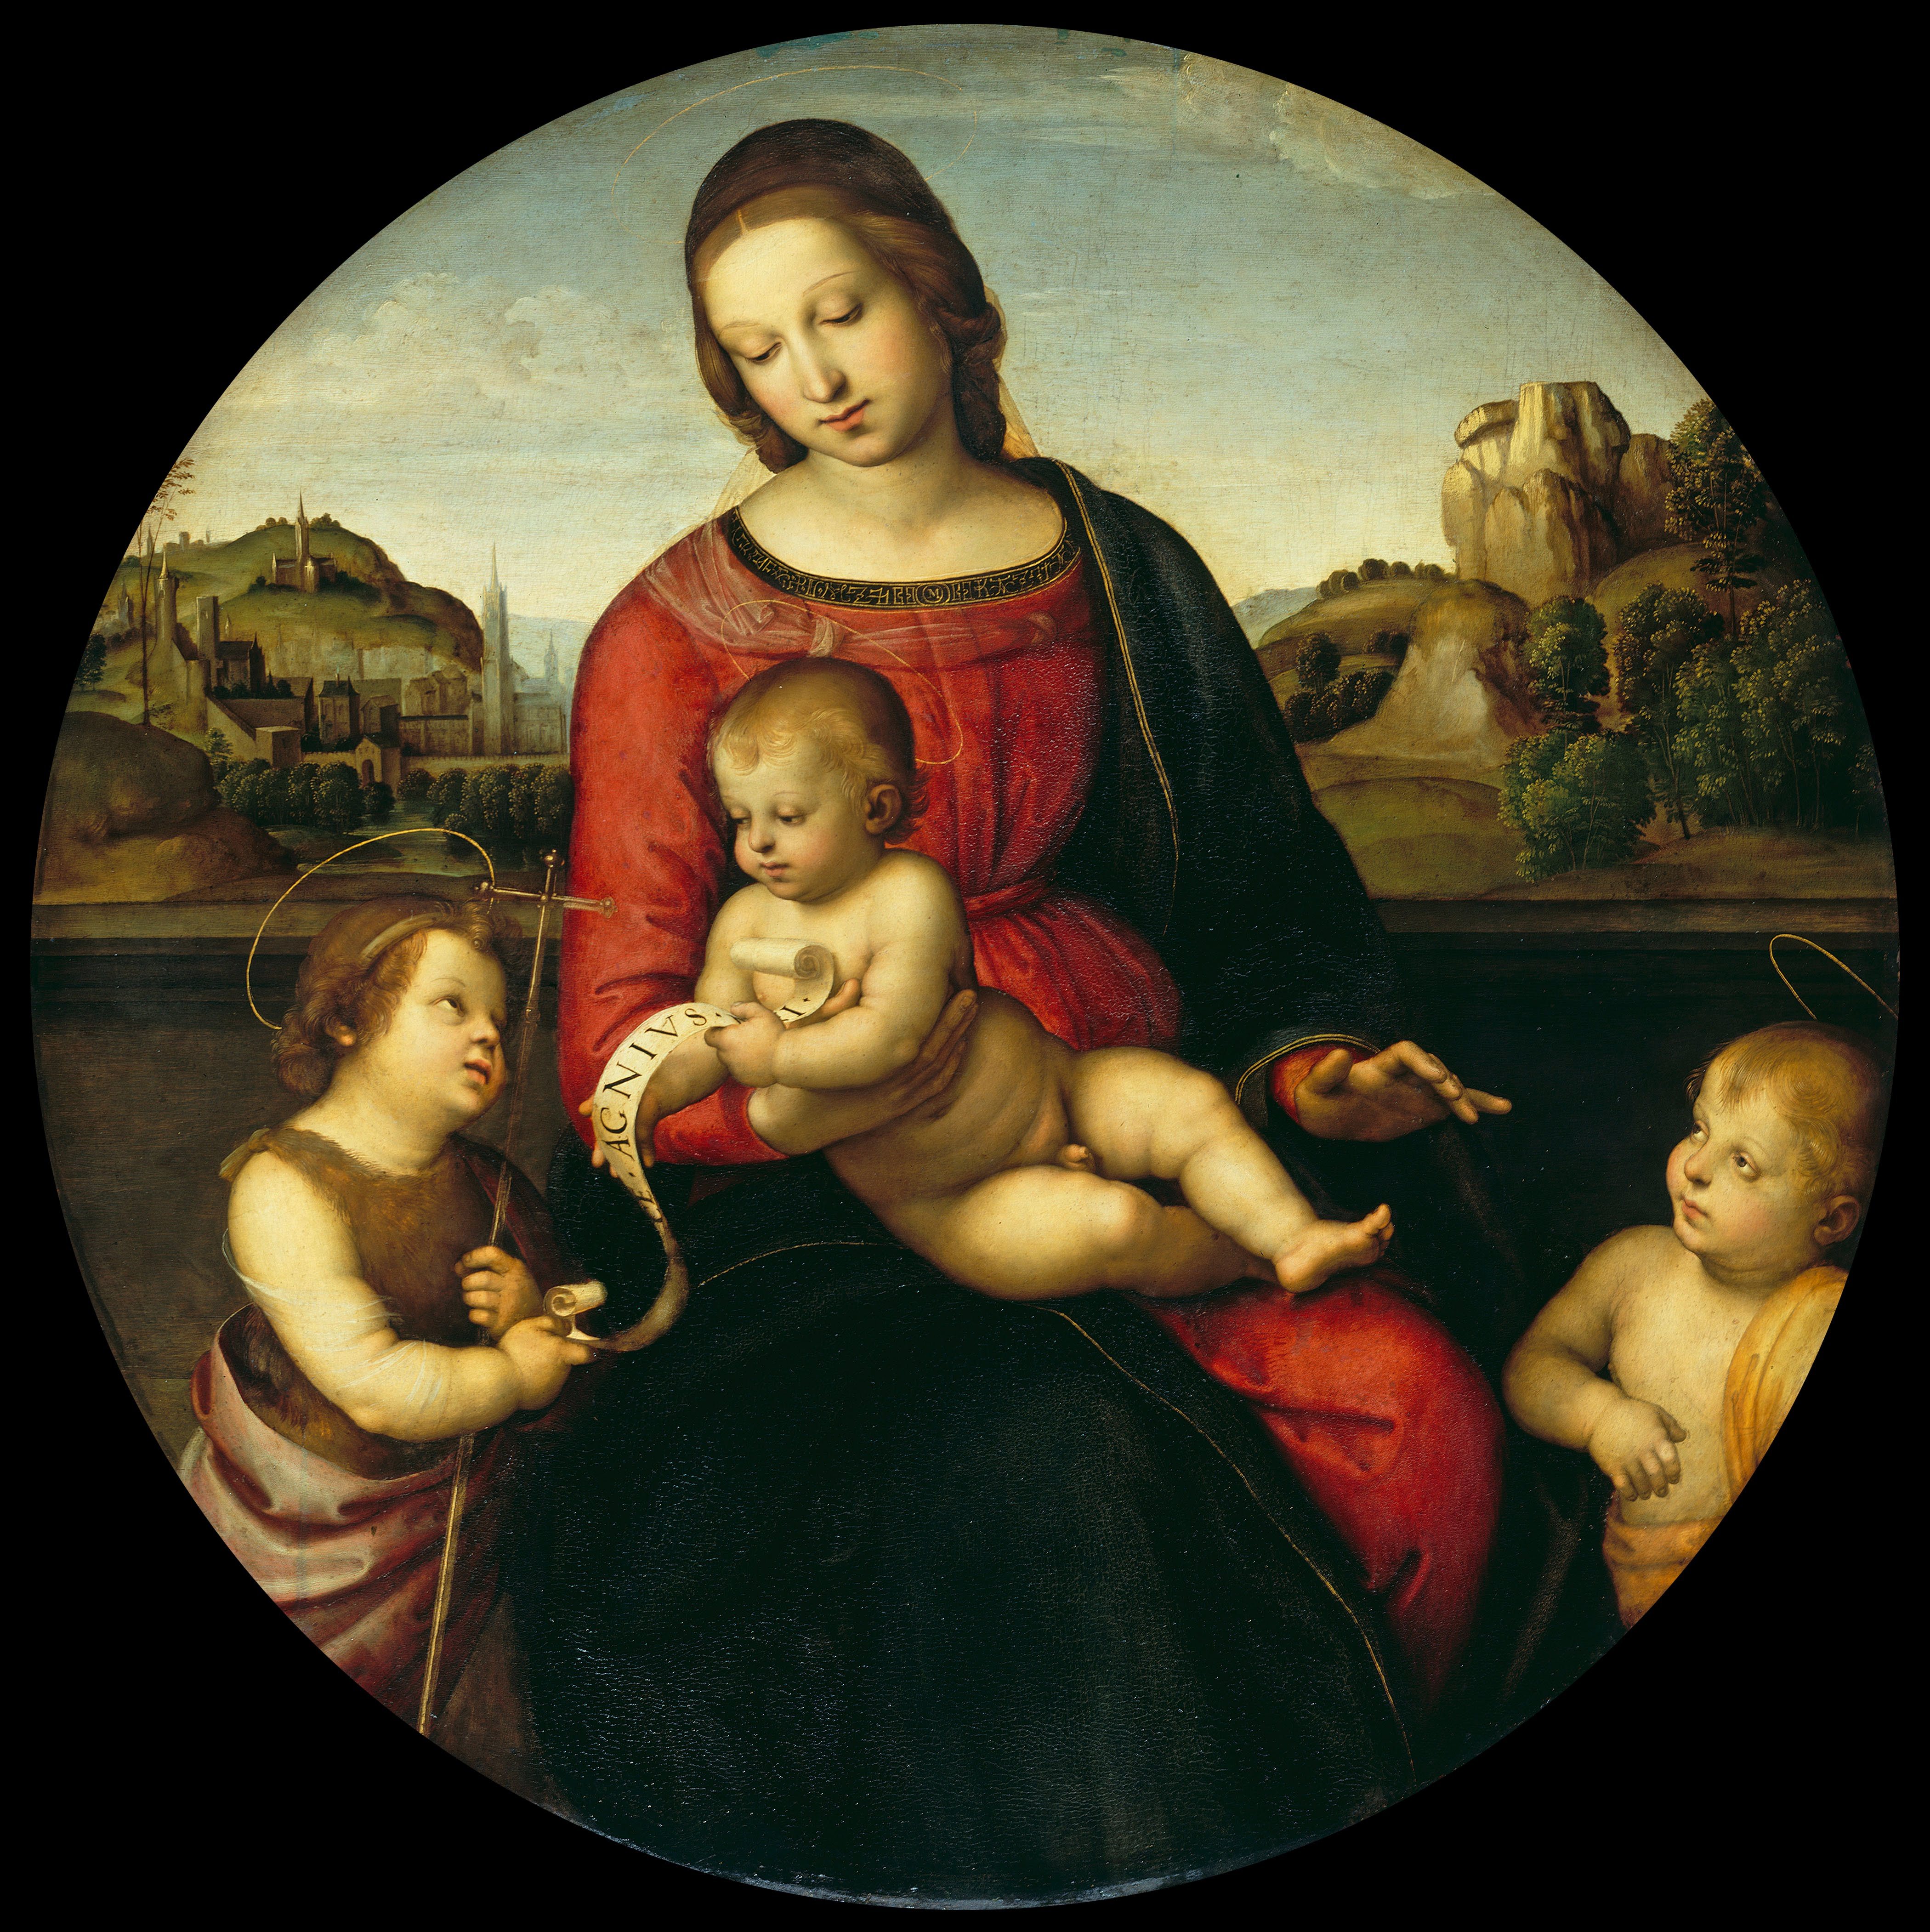 madonna and child with book raphael 80% off a hand made oil painting reproduction of madonna and child with book, one of the most famous paintings by raphael free certificate of authenticity free shipping.